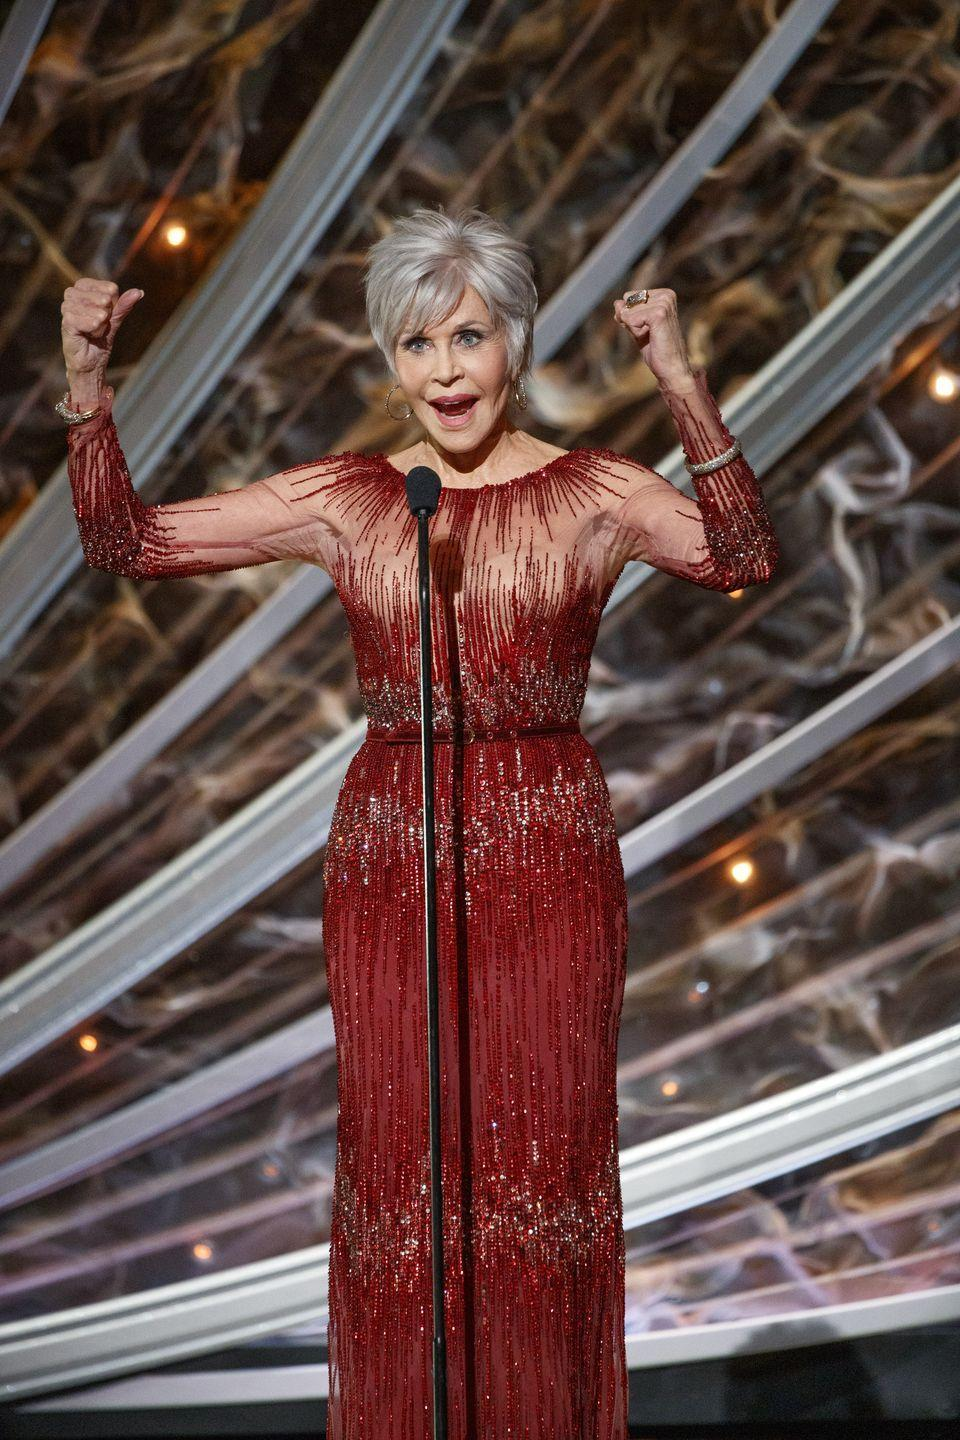 """<p>As part of her activism around climate change, Jane Fonda vowed that she would <a href=""""https://www.harpersbazaar.com/celebrity/latest/a29741997/jane-fonda-red-coat/"""" rel=""""nofollow noopener"""" target=""""_blank"""" data-ylk=""""slk:stop purchasing new clothing"""" class=""""link rapid-noclick-resp"""">stop purchasing new clothing</a>. And she appears to have stayed committed to that mission. At the 2020 Oscars, she wore <a href=""""https://www.wmagazine.com/story/jane-fonda-2020-oscar-dress-rewore-cannes/"""" rel=""""nofollow noopener"""" target=""""_blank"""" data-ylk=""""slk:a sparkling red dress that she'd previously worn to the Cannes Film Festival"""" class=""""link rapid-noclick-resp"""">a sparkling red dress that she'd previously worn to the Cannes Film Festival</a> in 2014. </p>"""